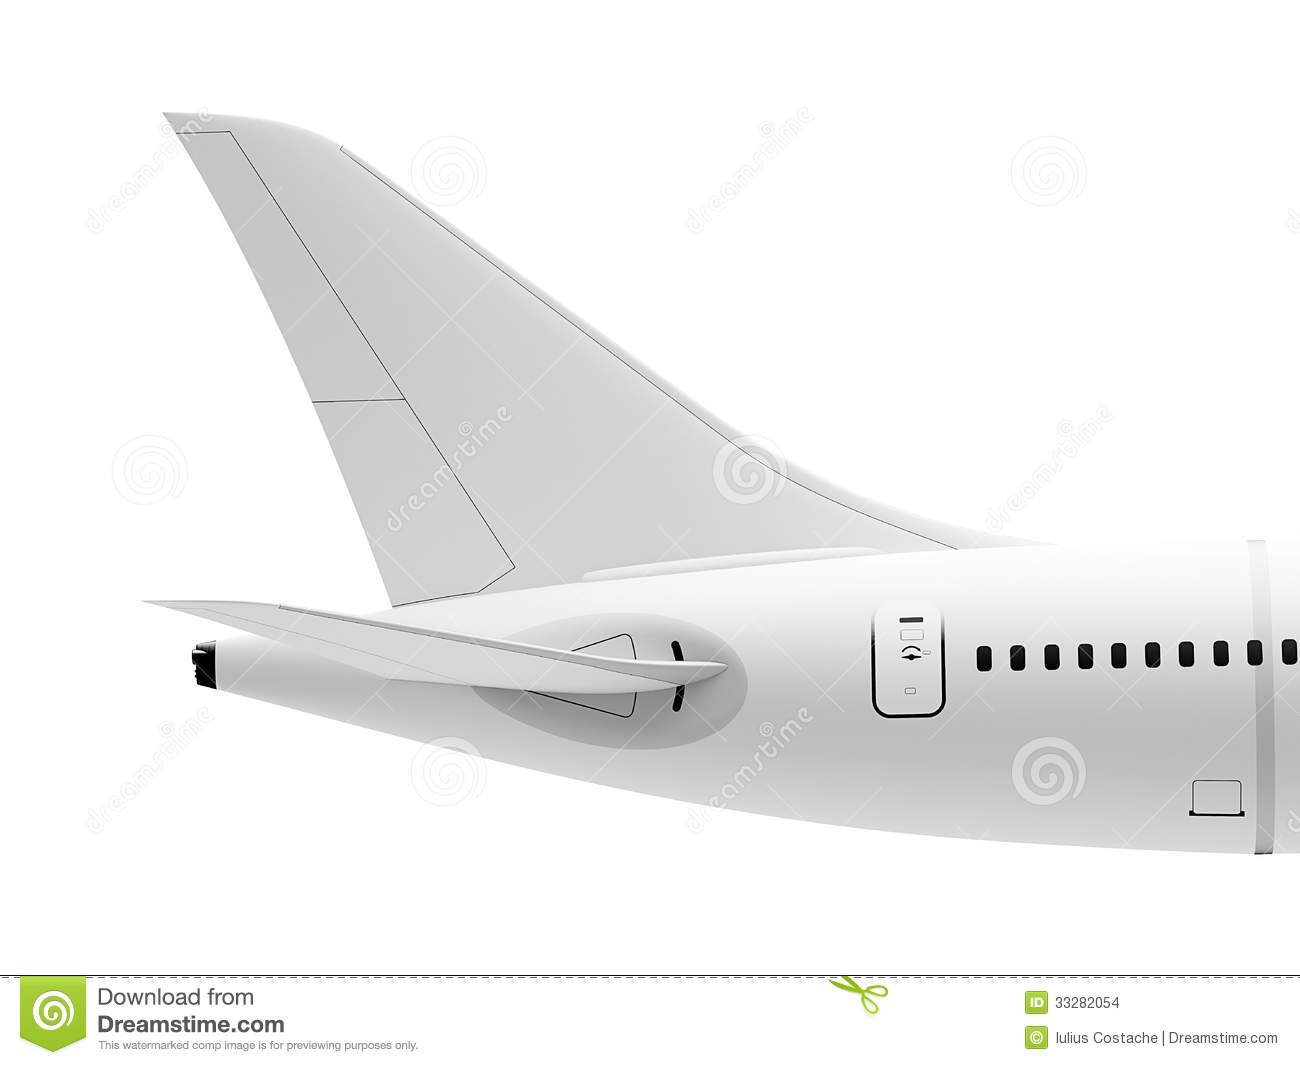 TAIL PLANE CLIPART.